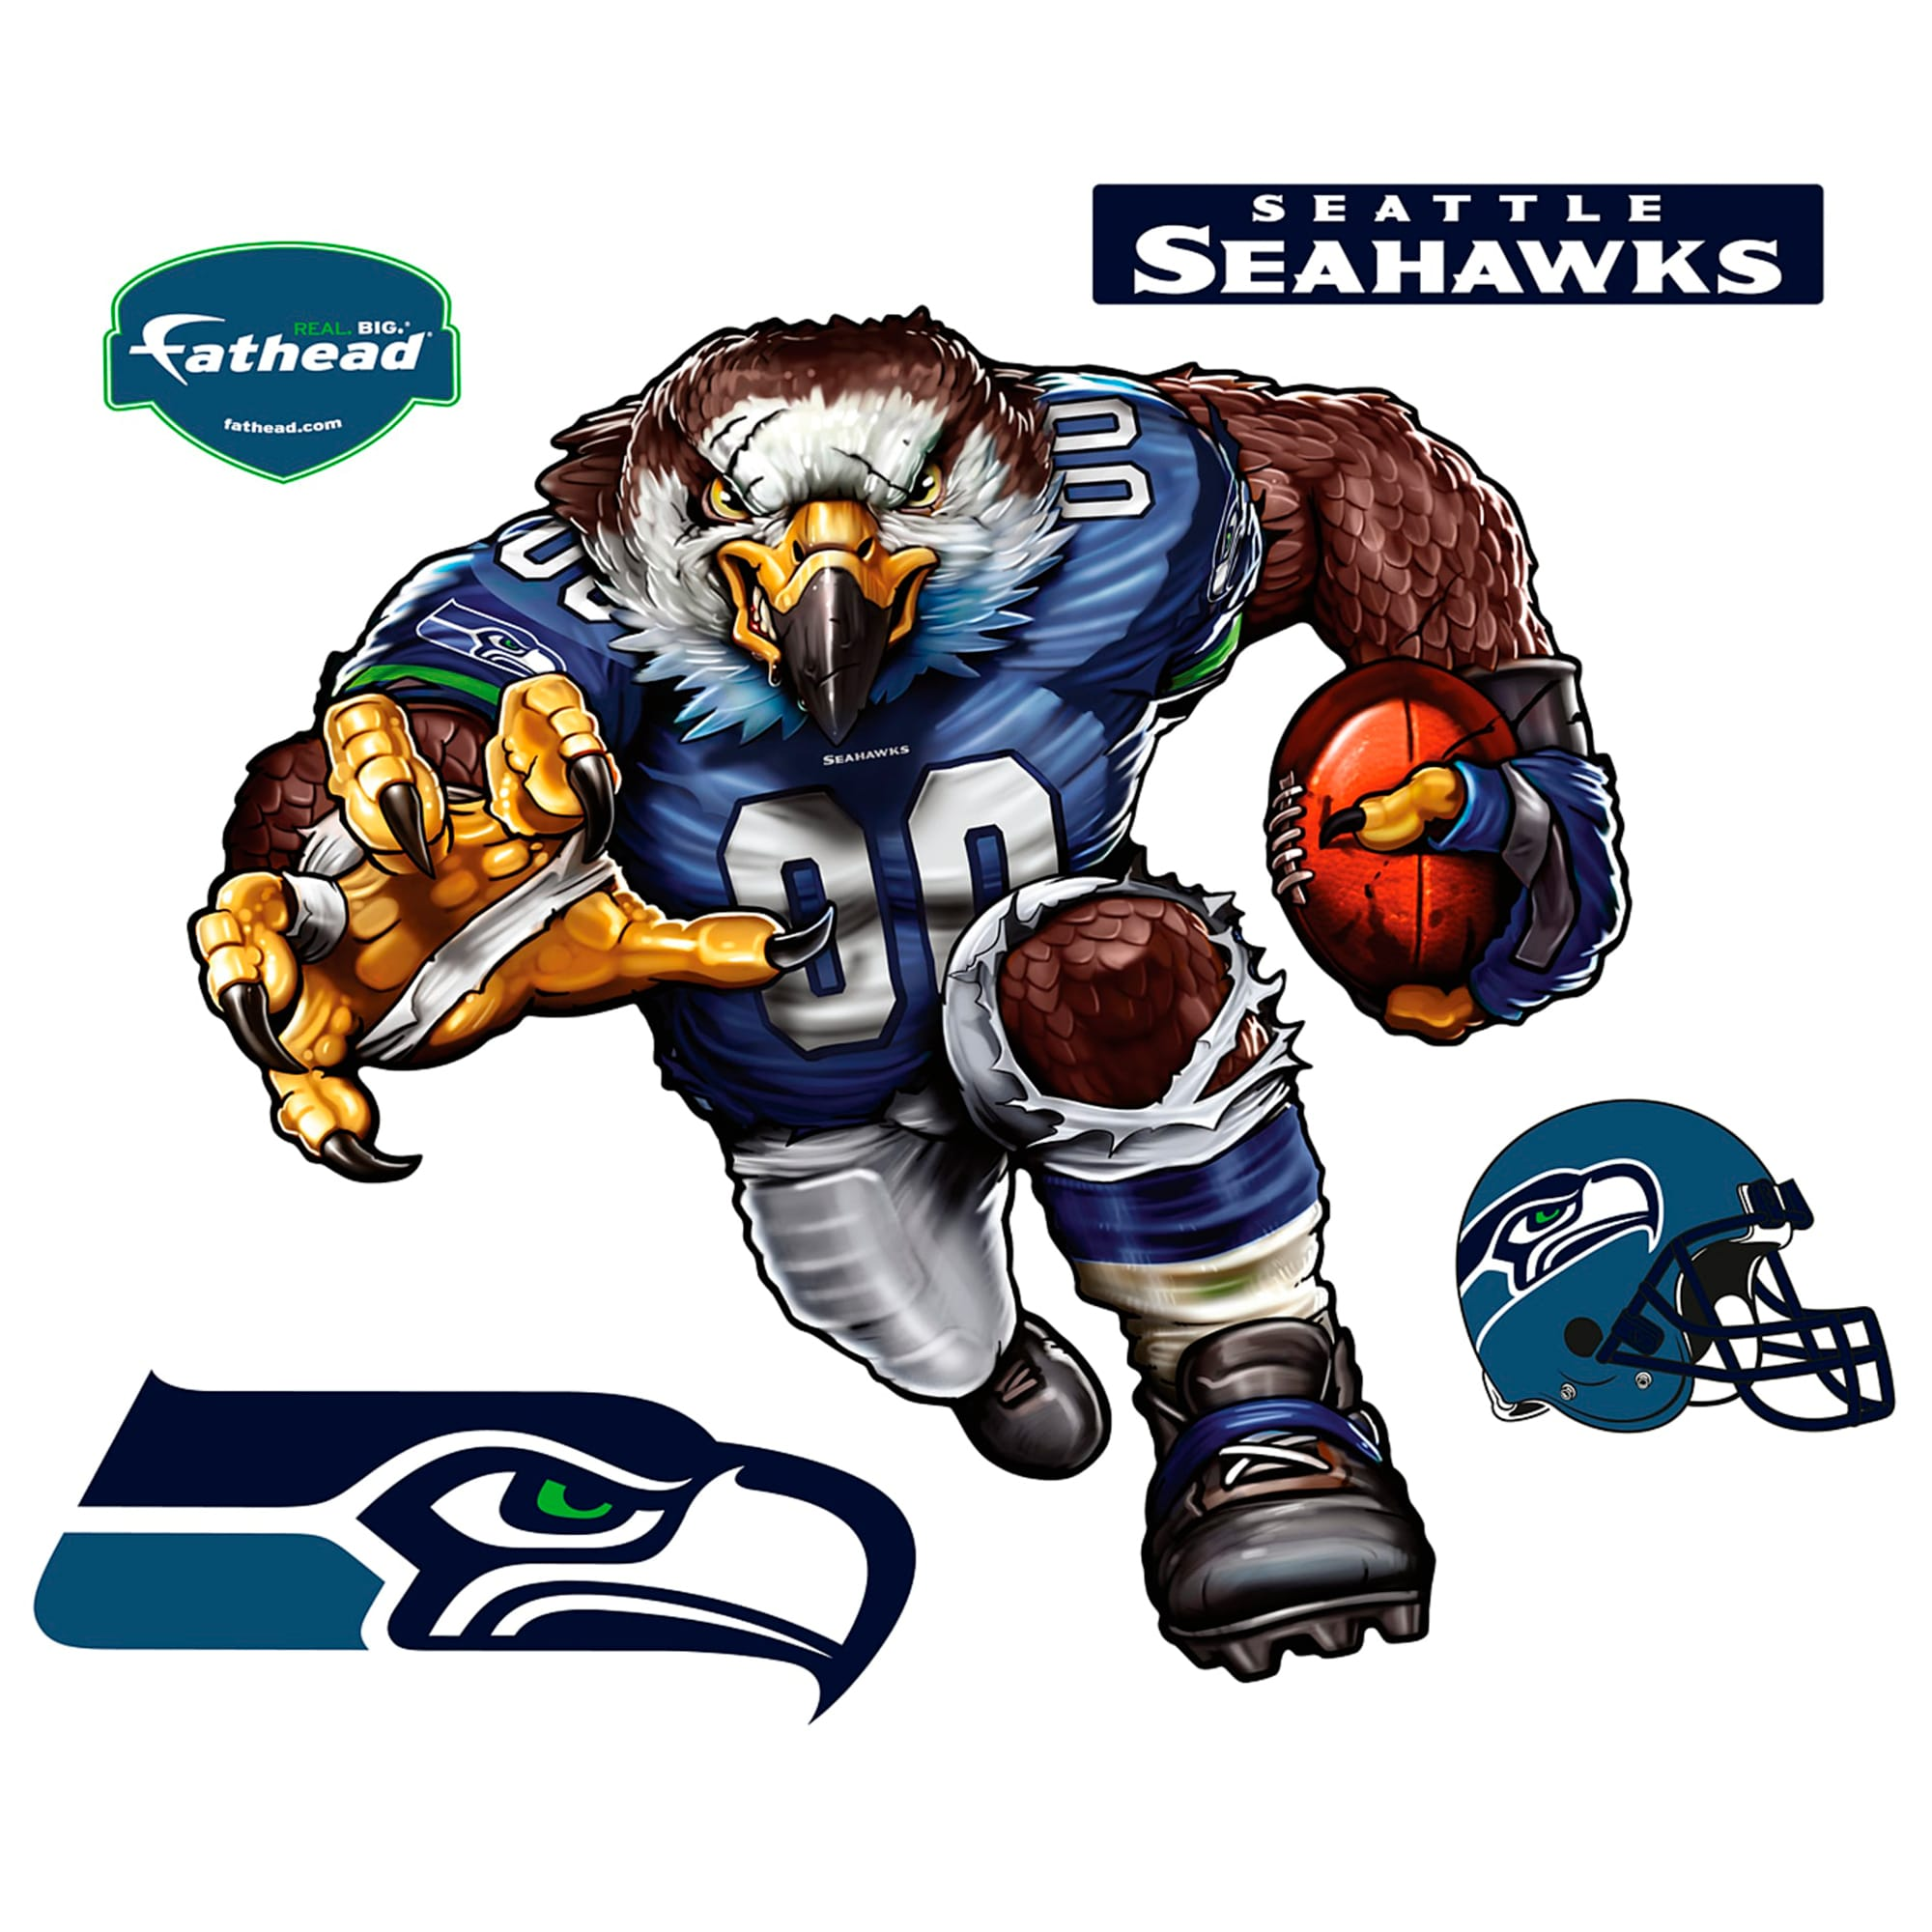 Seattle Seahawks Fathead Sinister Seahawk 5-Pack Removable Wall Decal